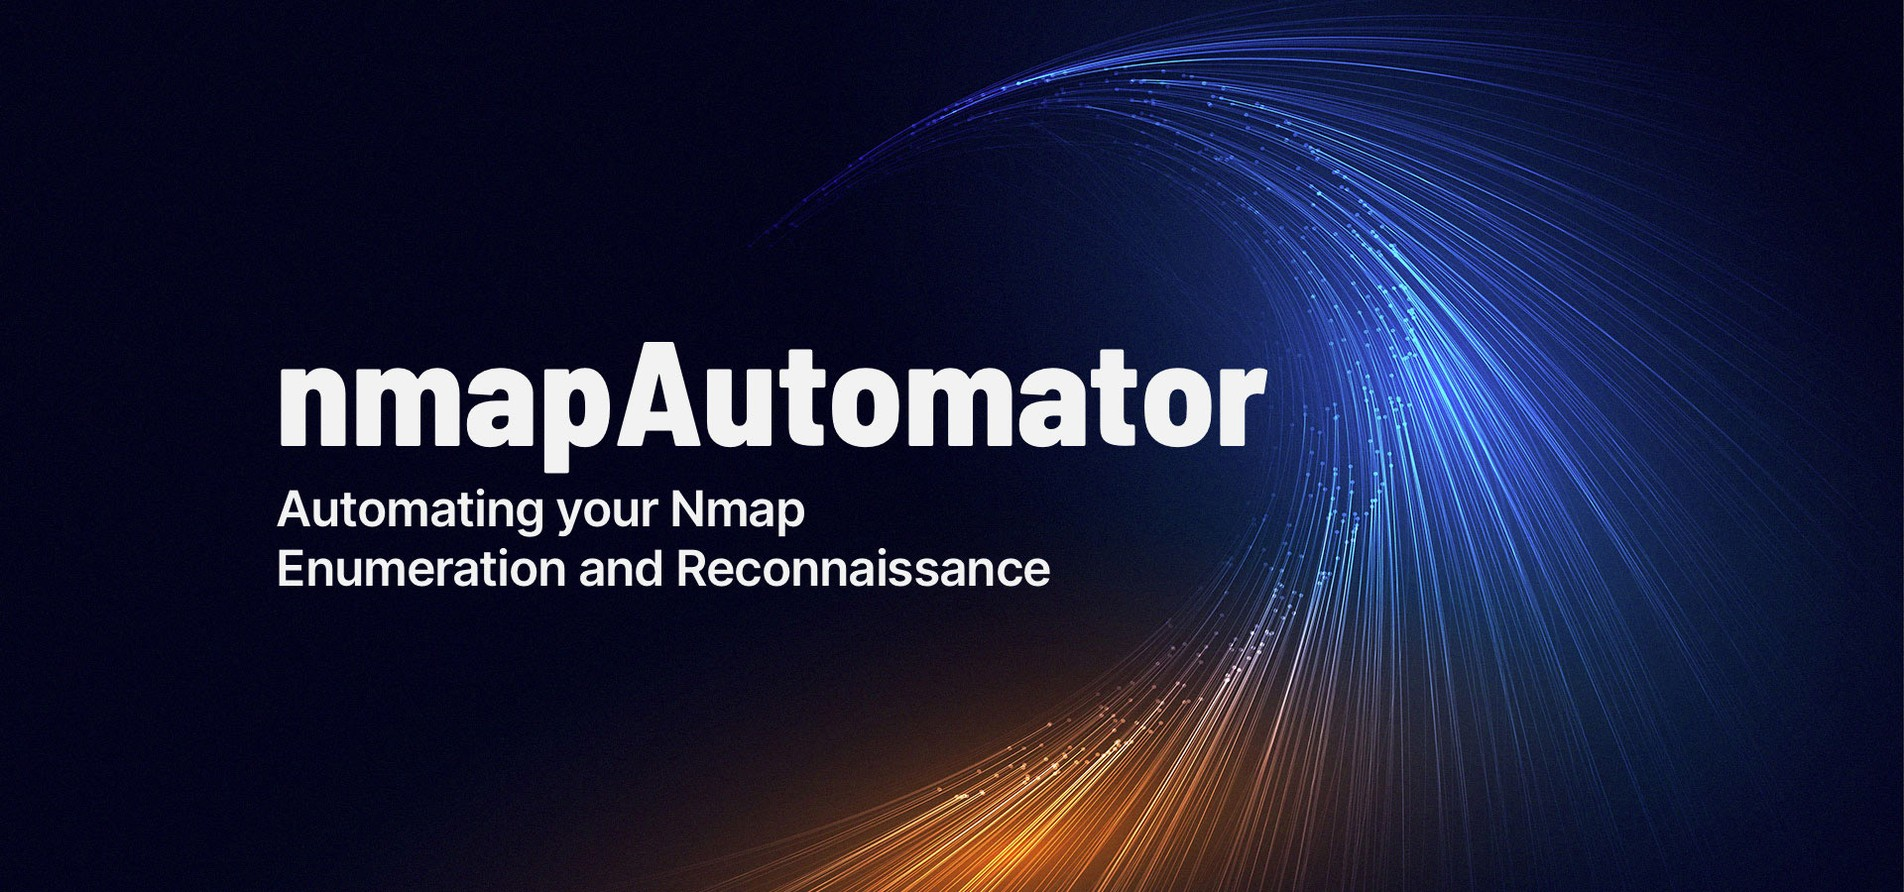 nmapAutomator: Automating your Nmap Enumeration and Reconnaissance.